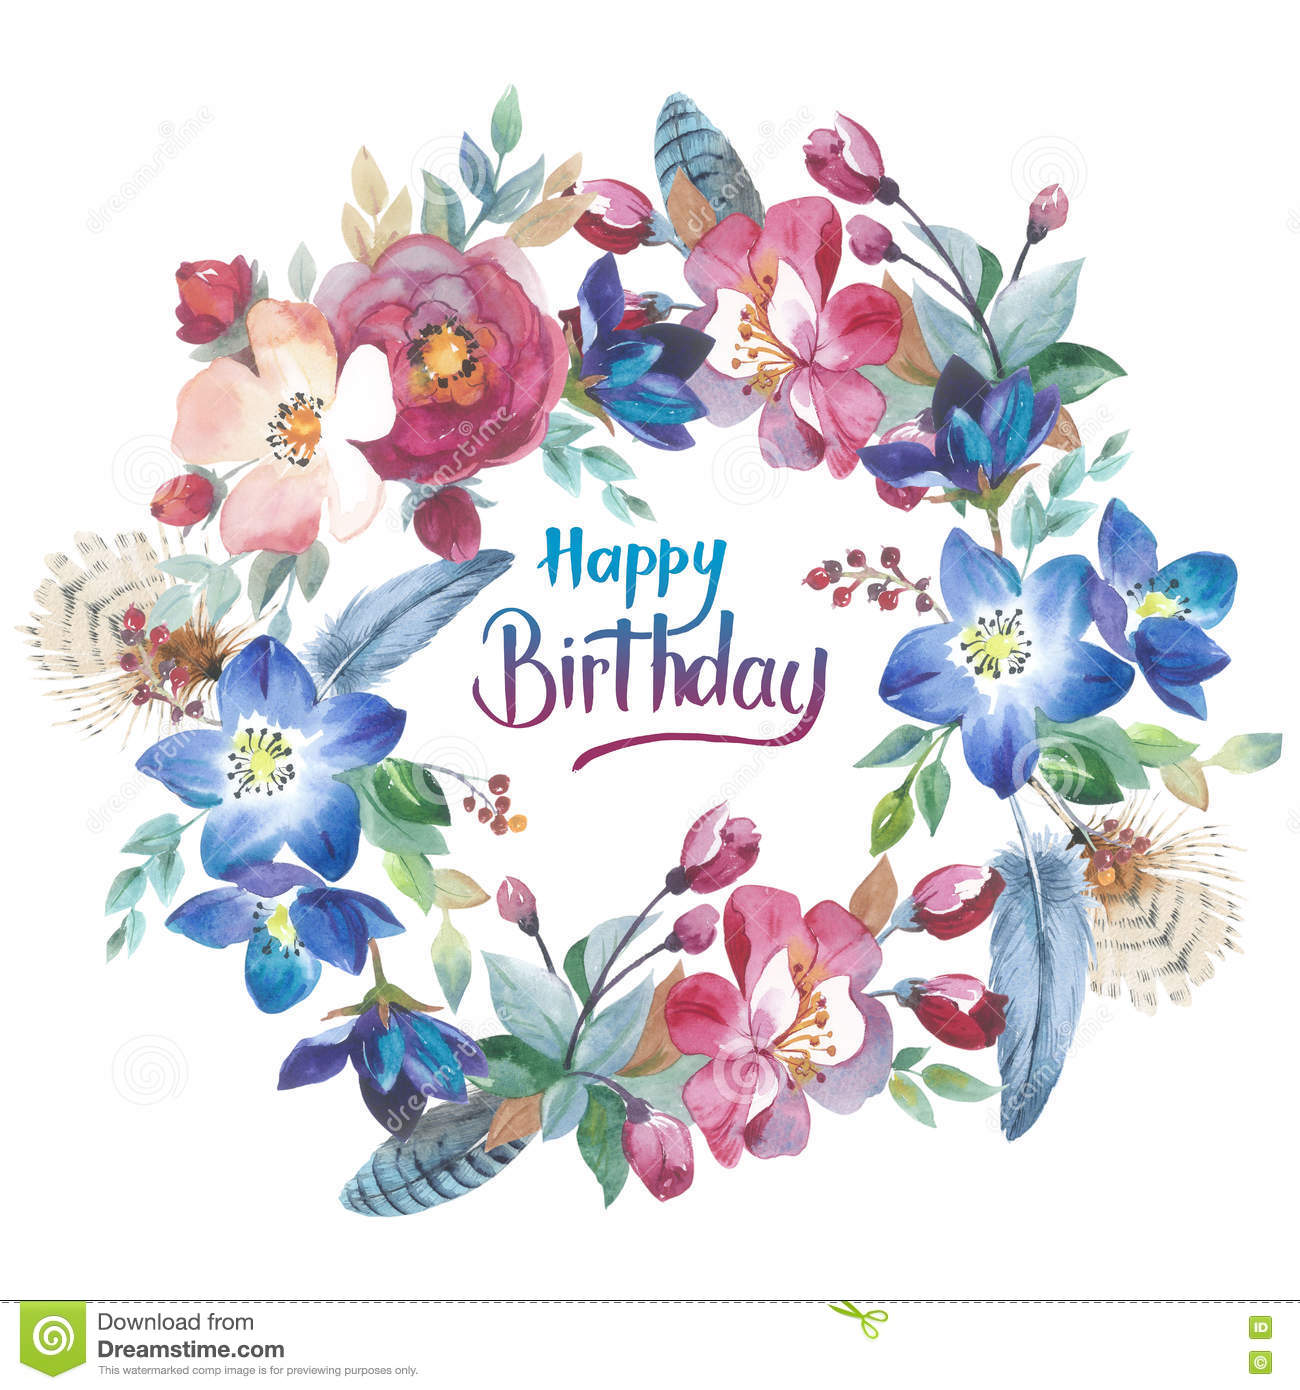 Happy birthday boho style stock illustrations 71 happy birthday wildflower rose flower wreath in a watercolor style isolated full name of the plant izmirmasajfo Image collections